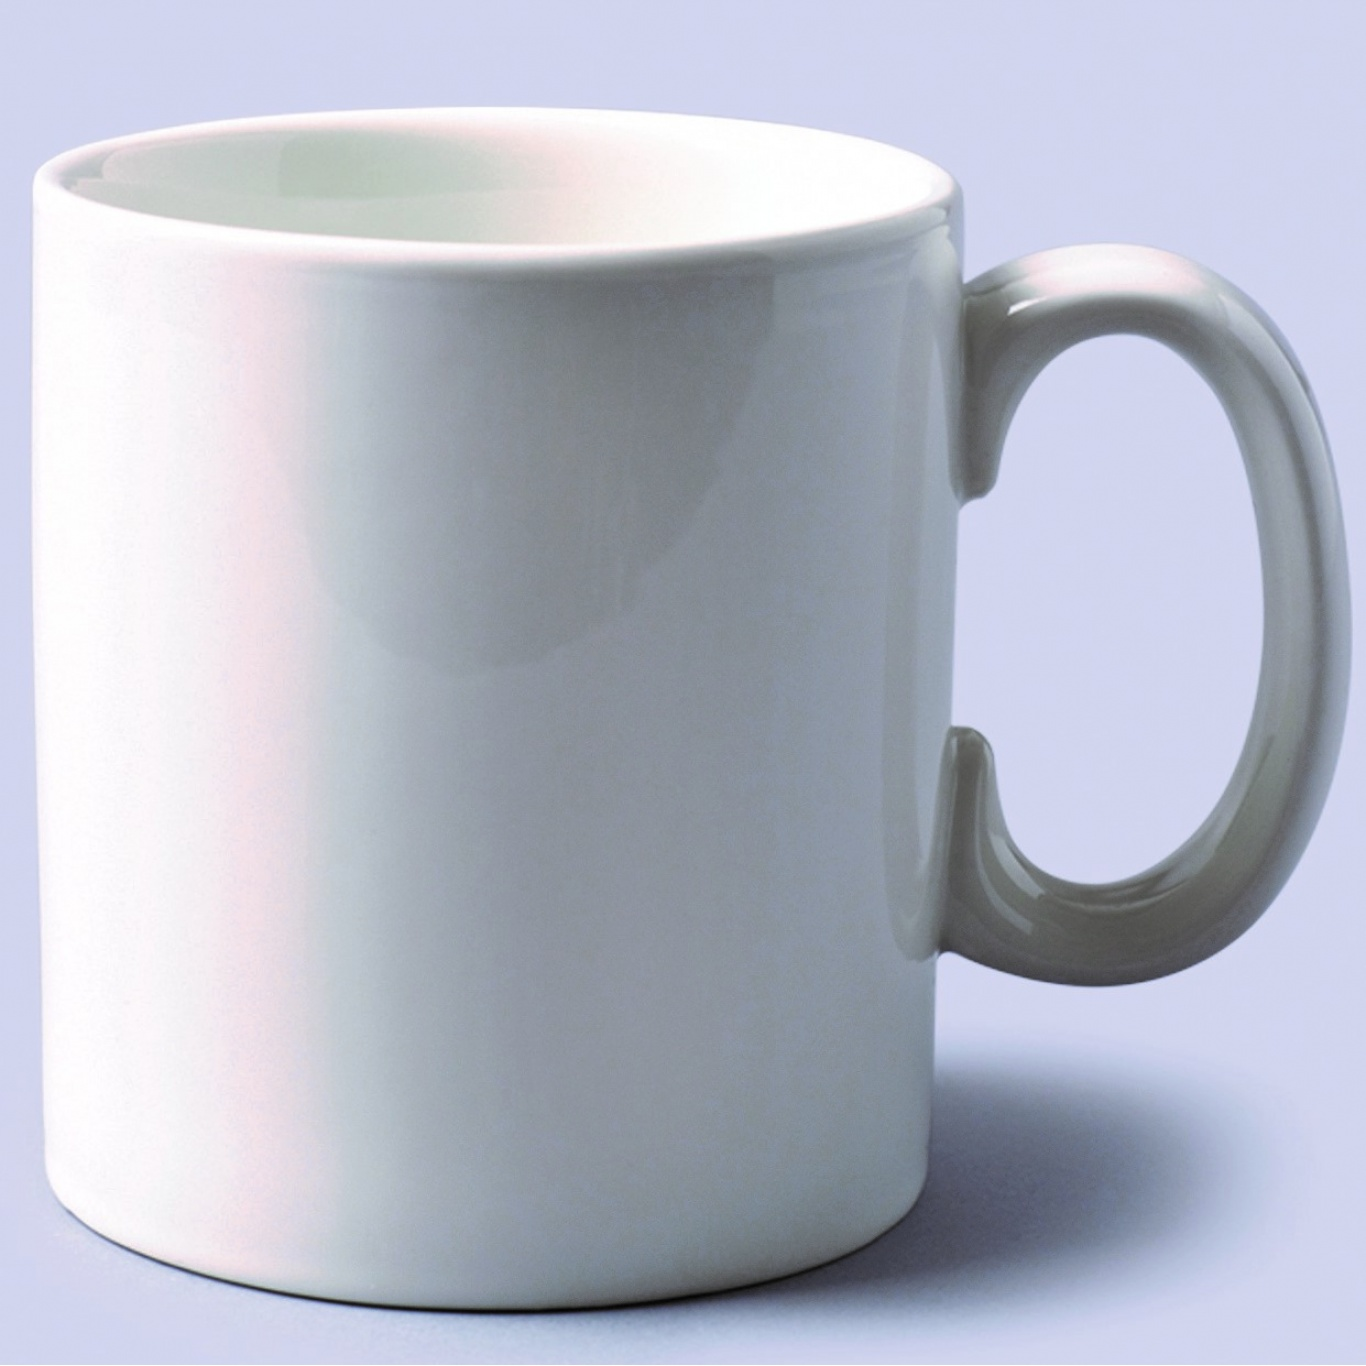 Image of 1 pint Extra Large Mug White